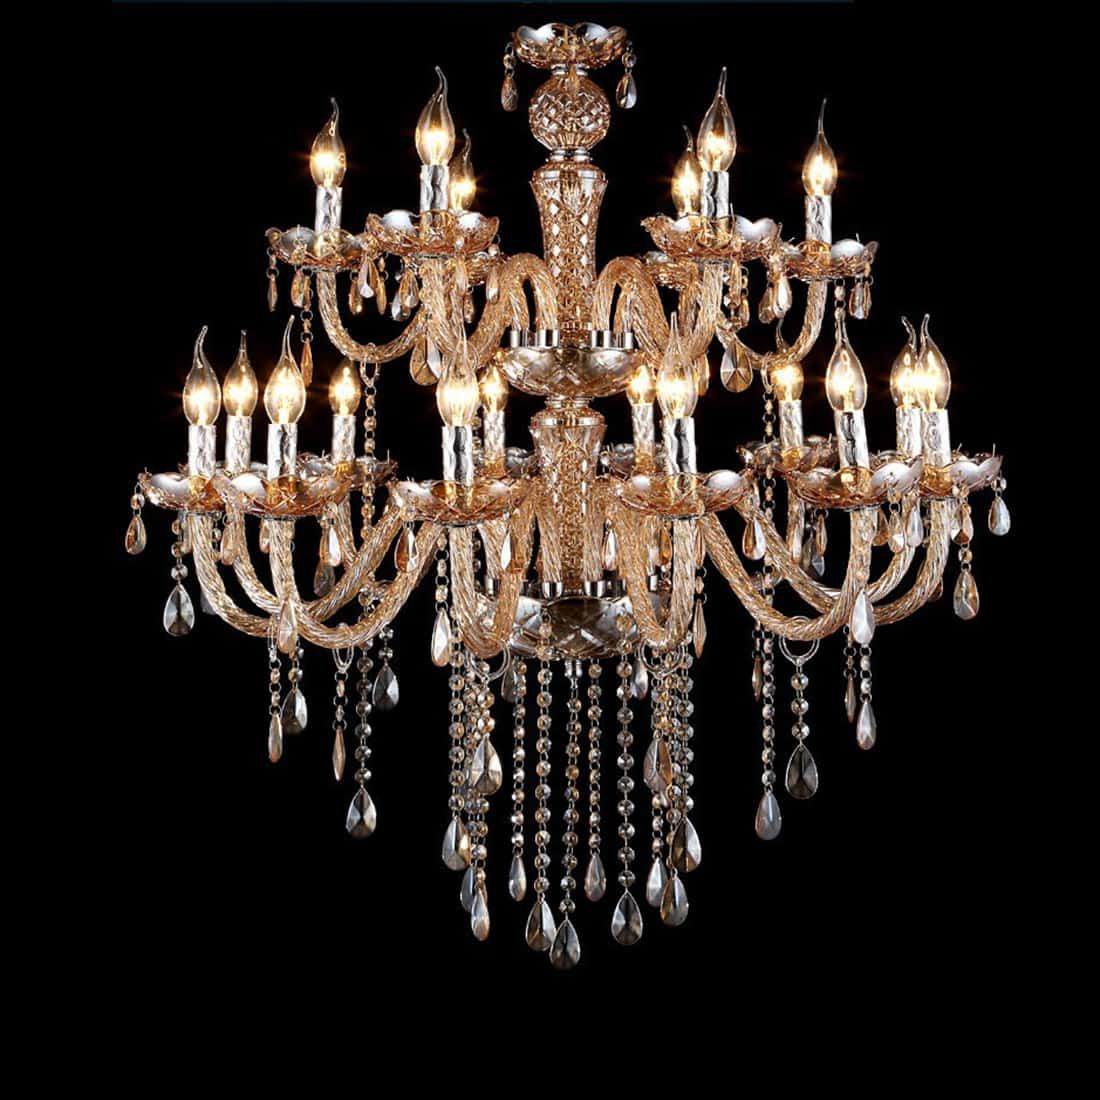 luxury-candle-chandelier